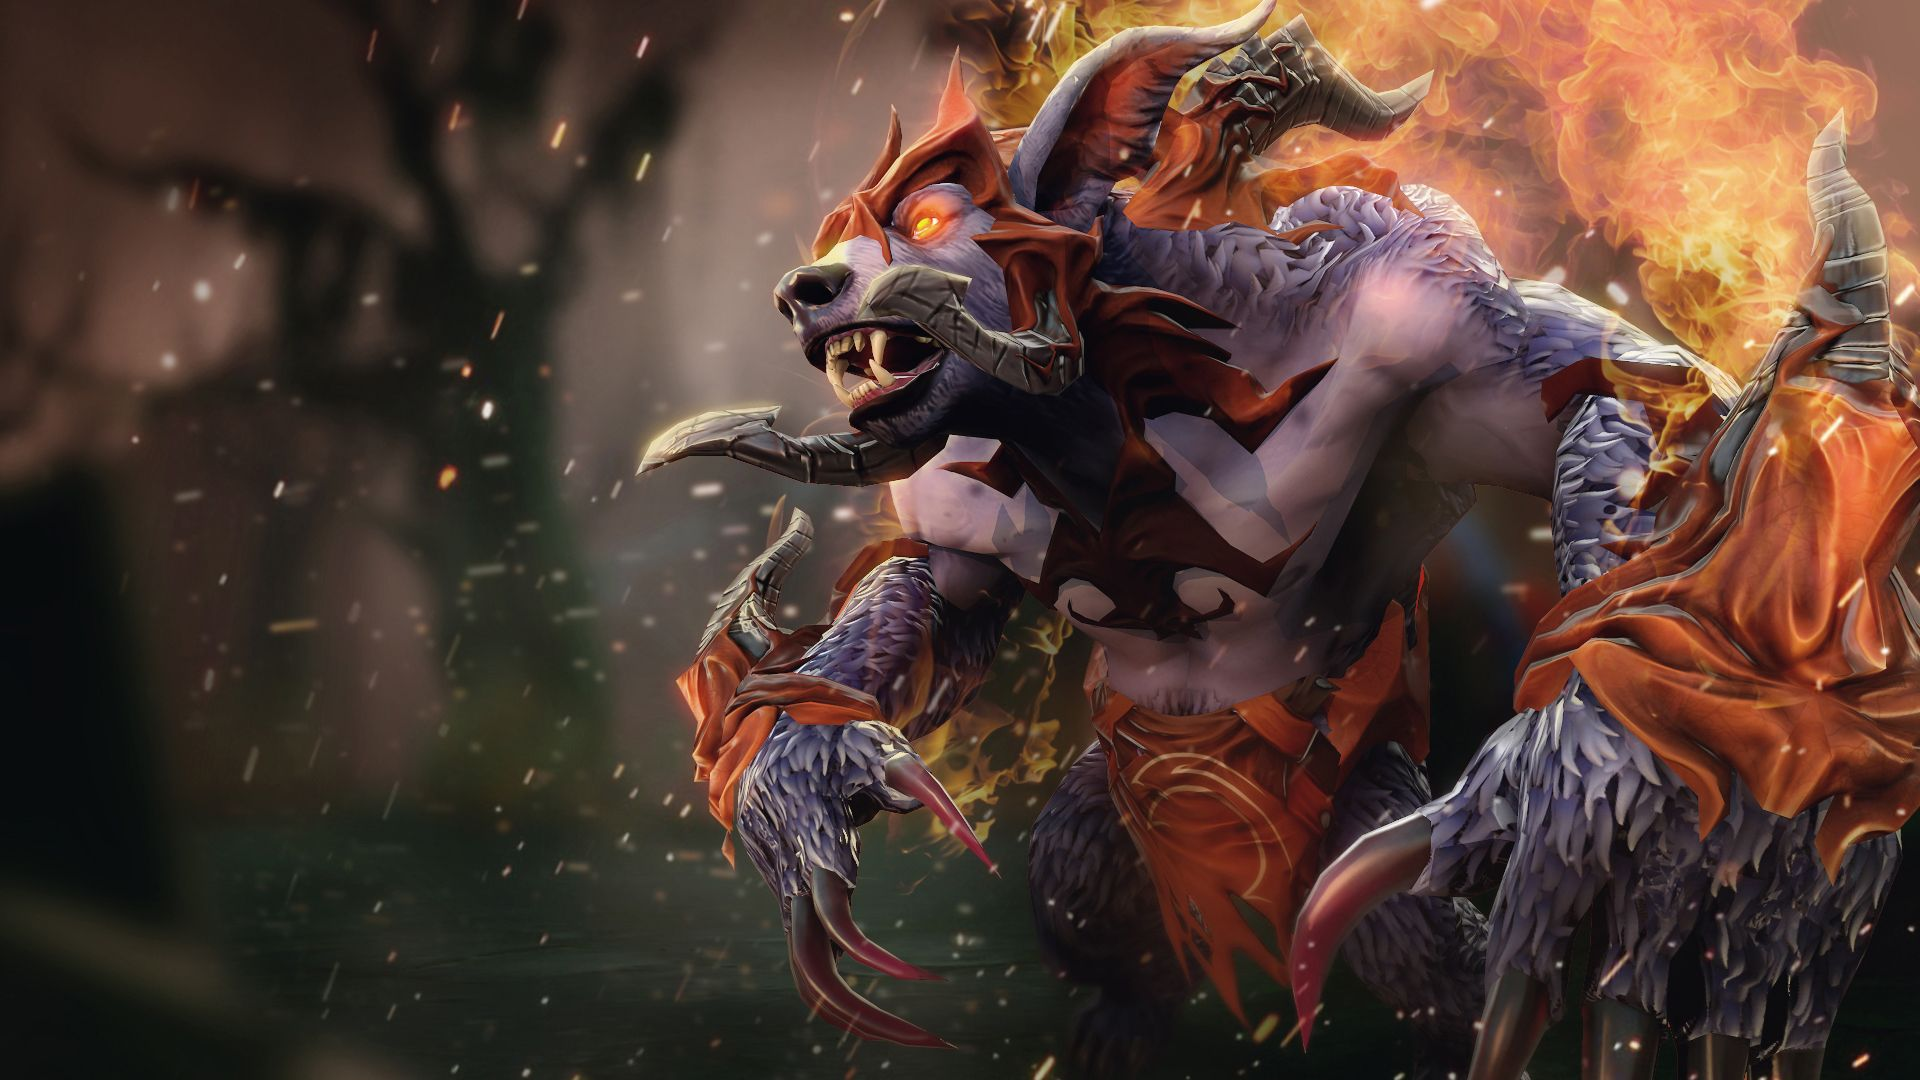 Hd Photos Images Ursa Dota  Wallpapers Pics